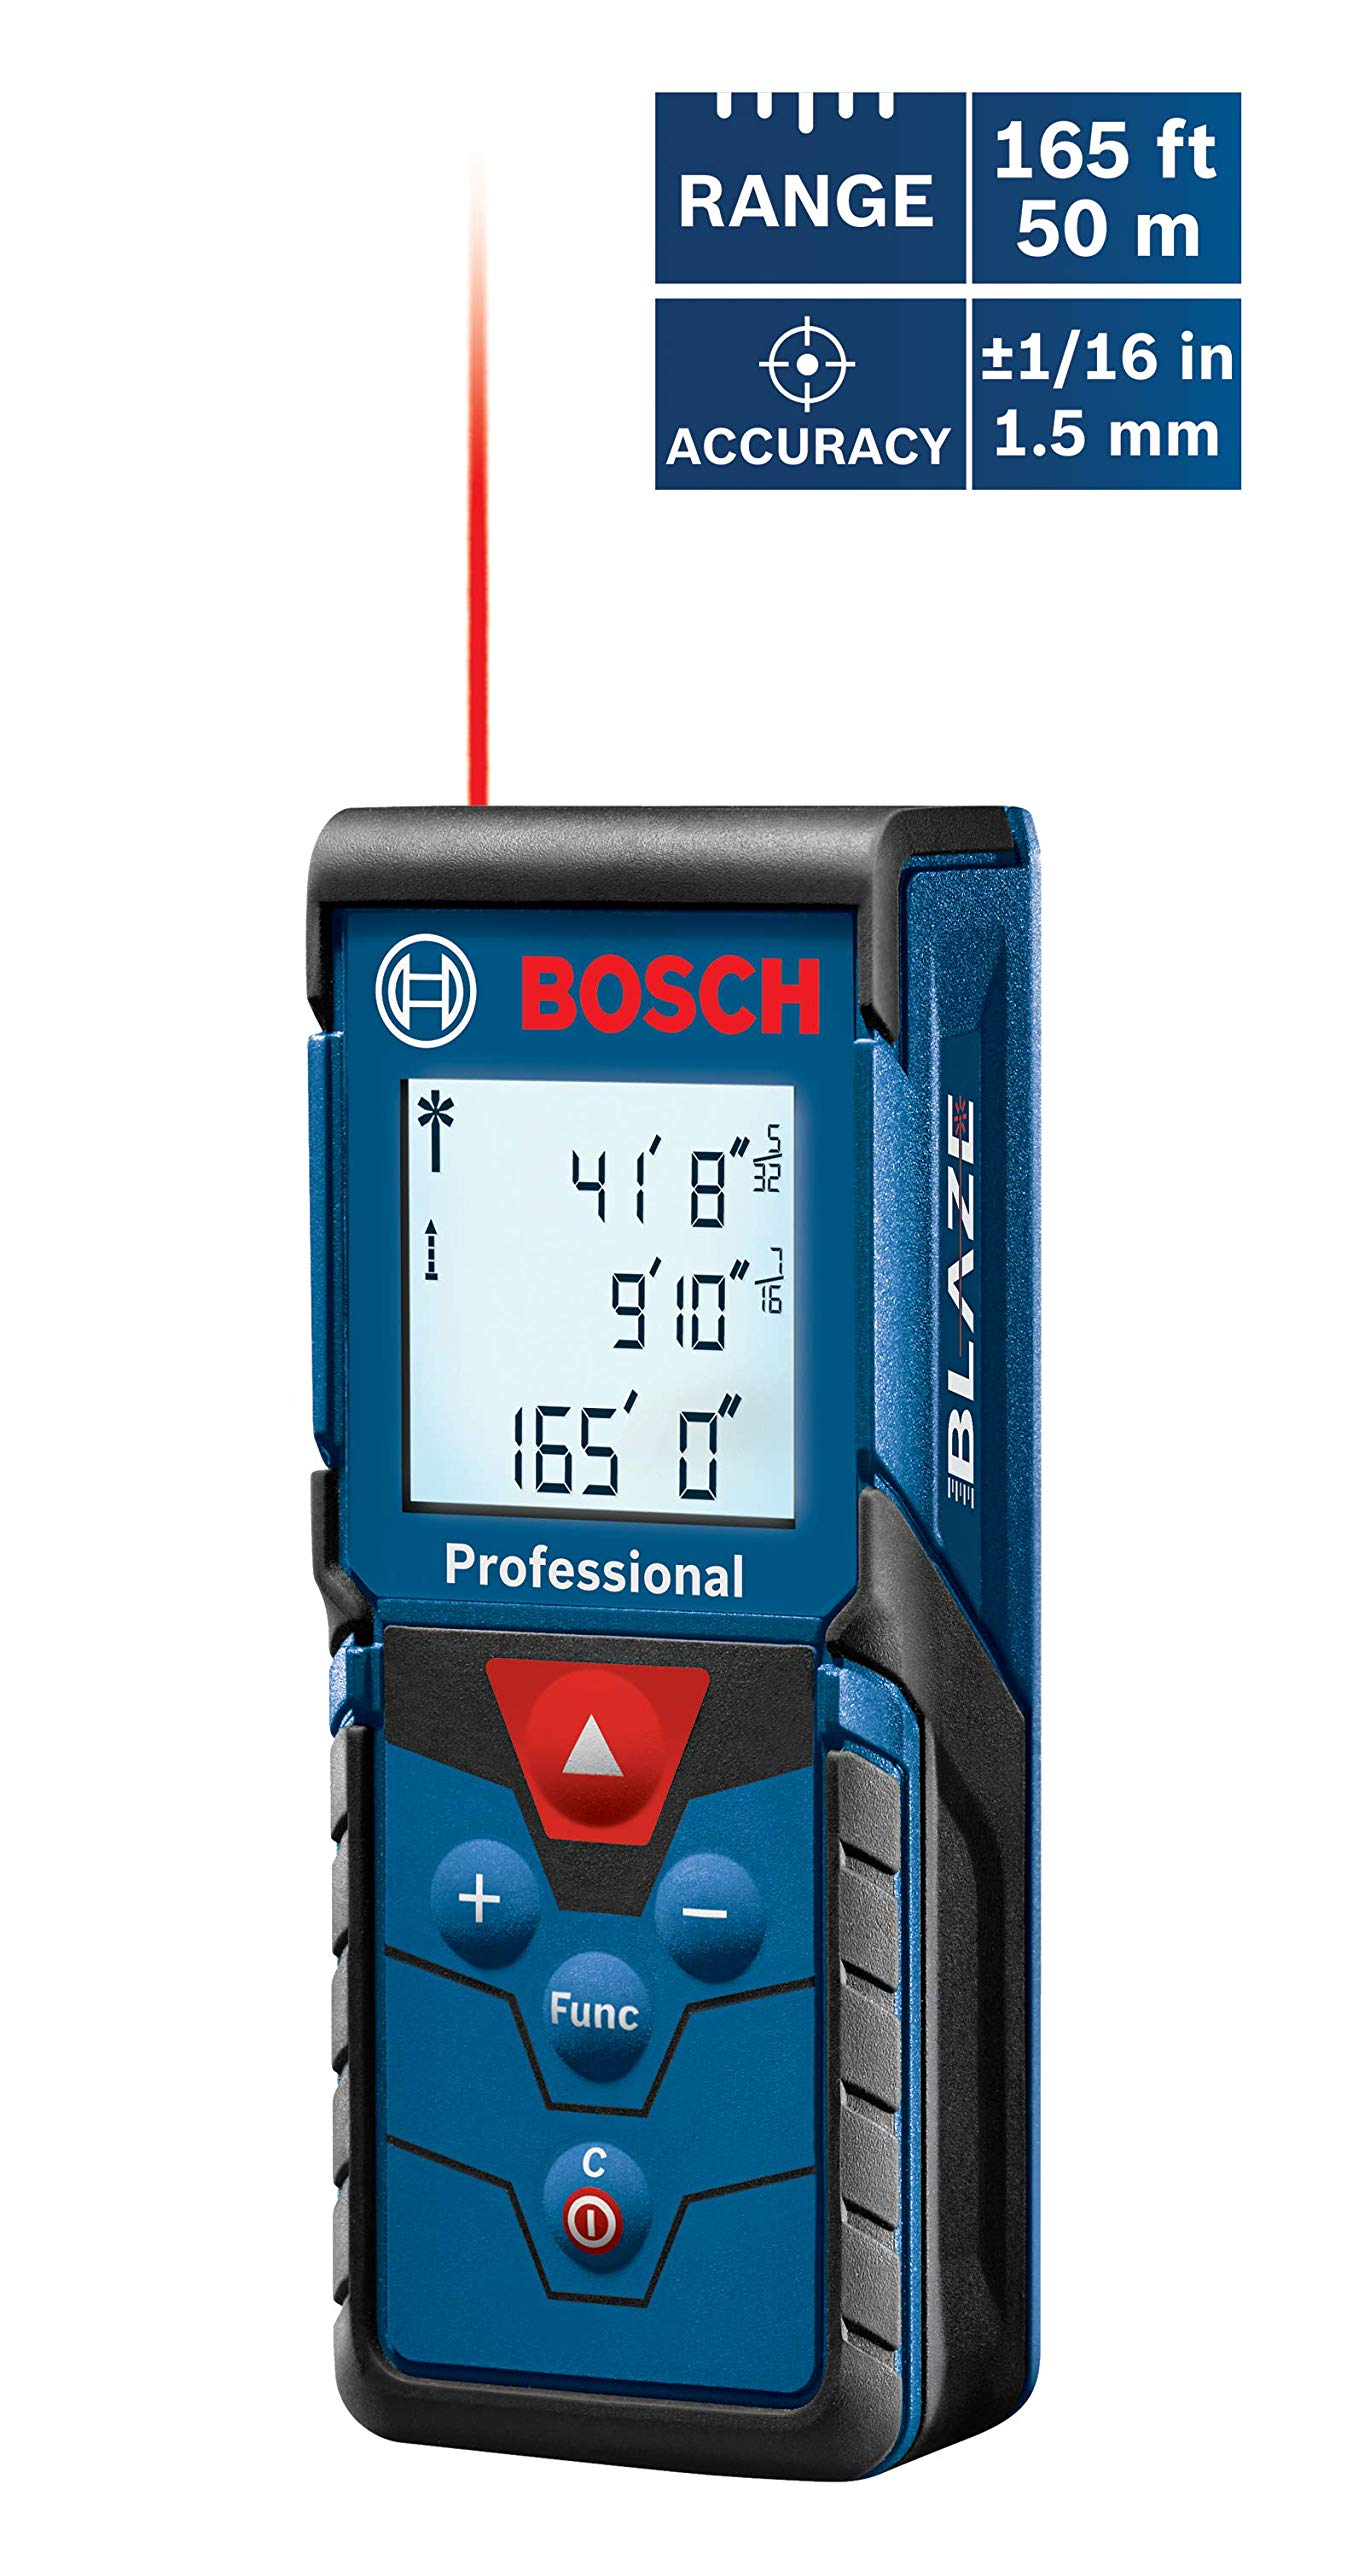 Bosch GLM 80 and R 60 Combo Kit with 265-Foot Distance Measurer and 24-Inch Digital Level